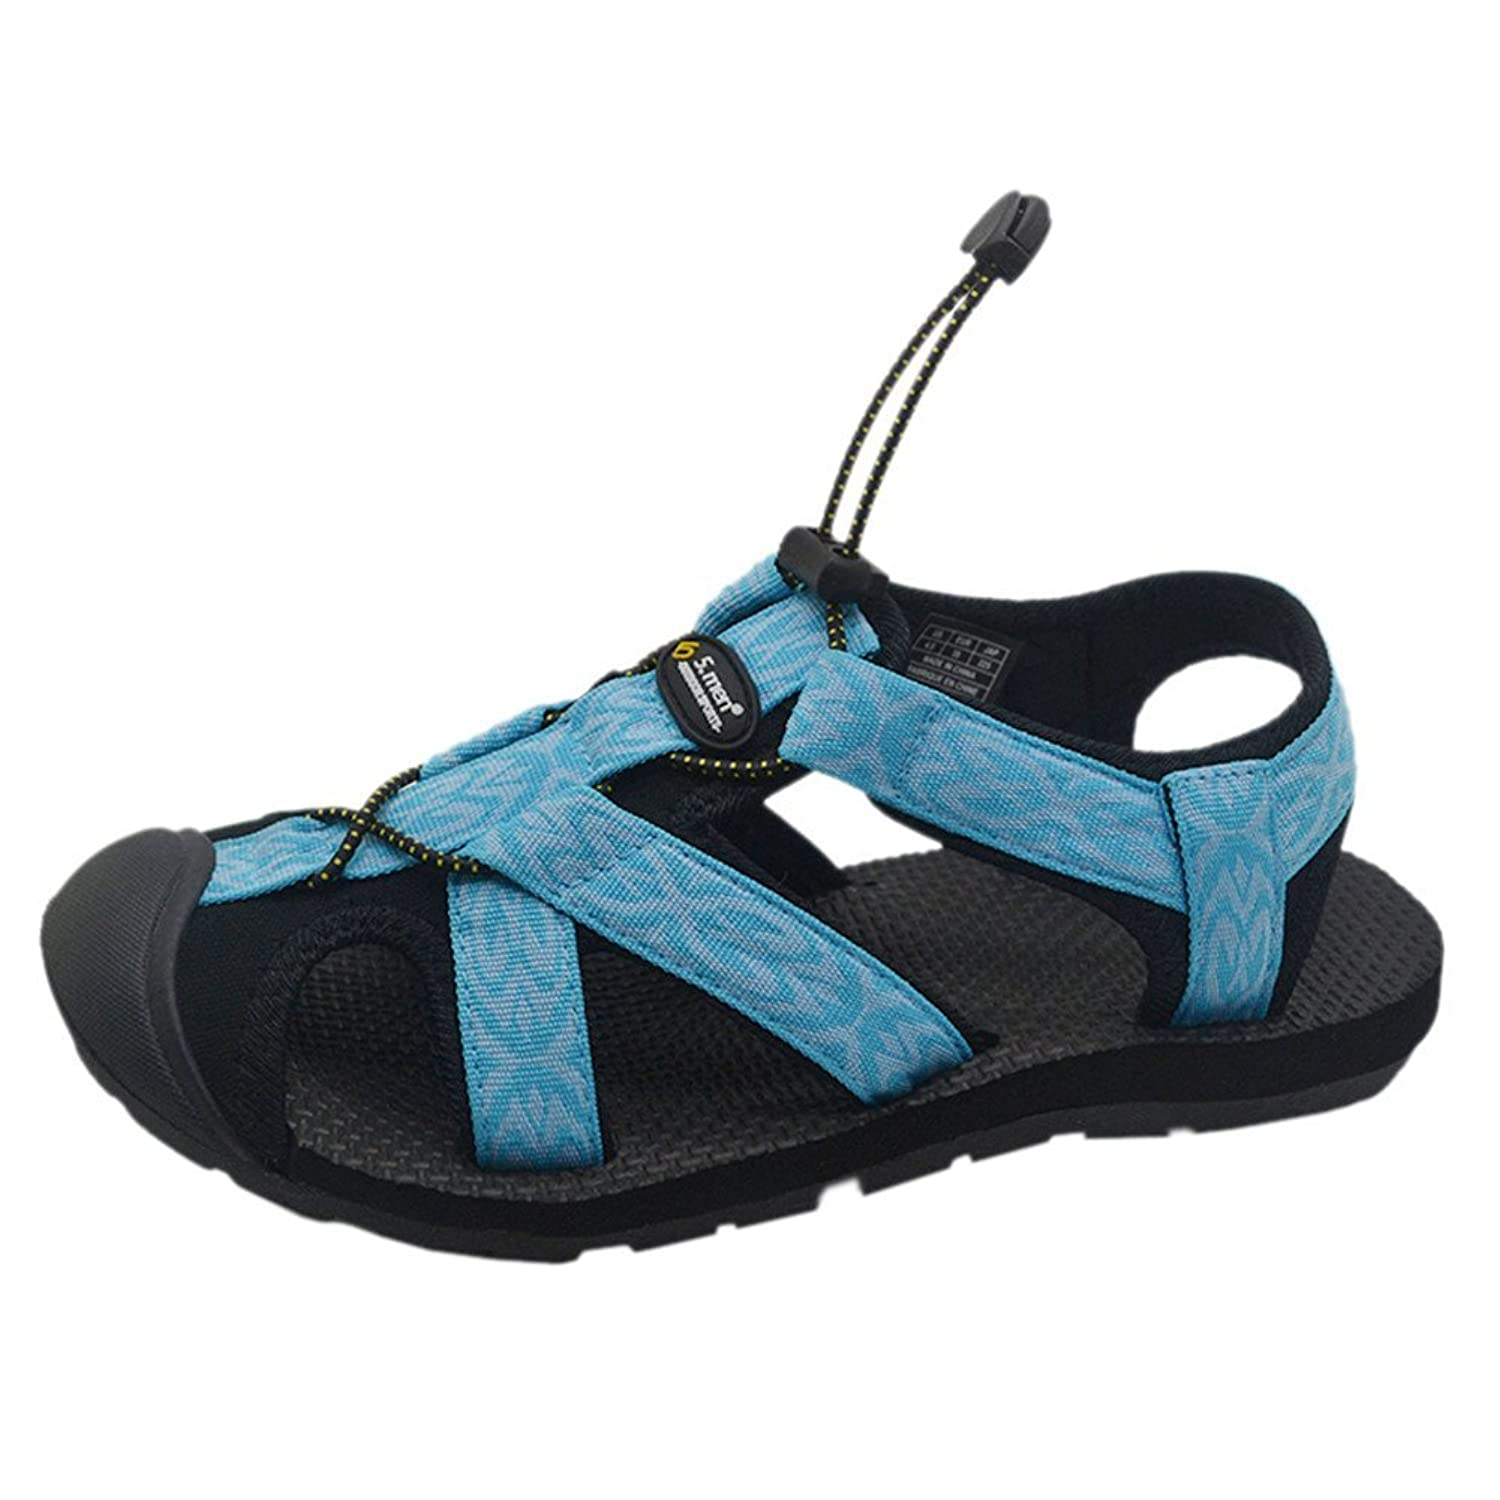 5.men Women's Outdoor Hiking Sport Sandals Closed-Toe Water Shoes (7.5)